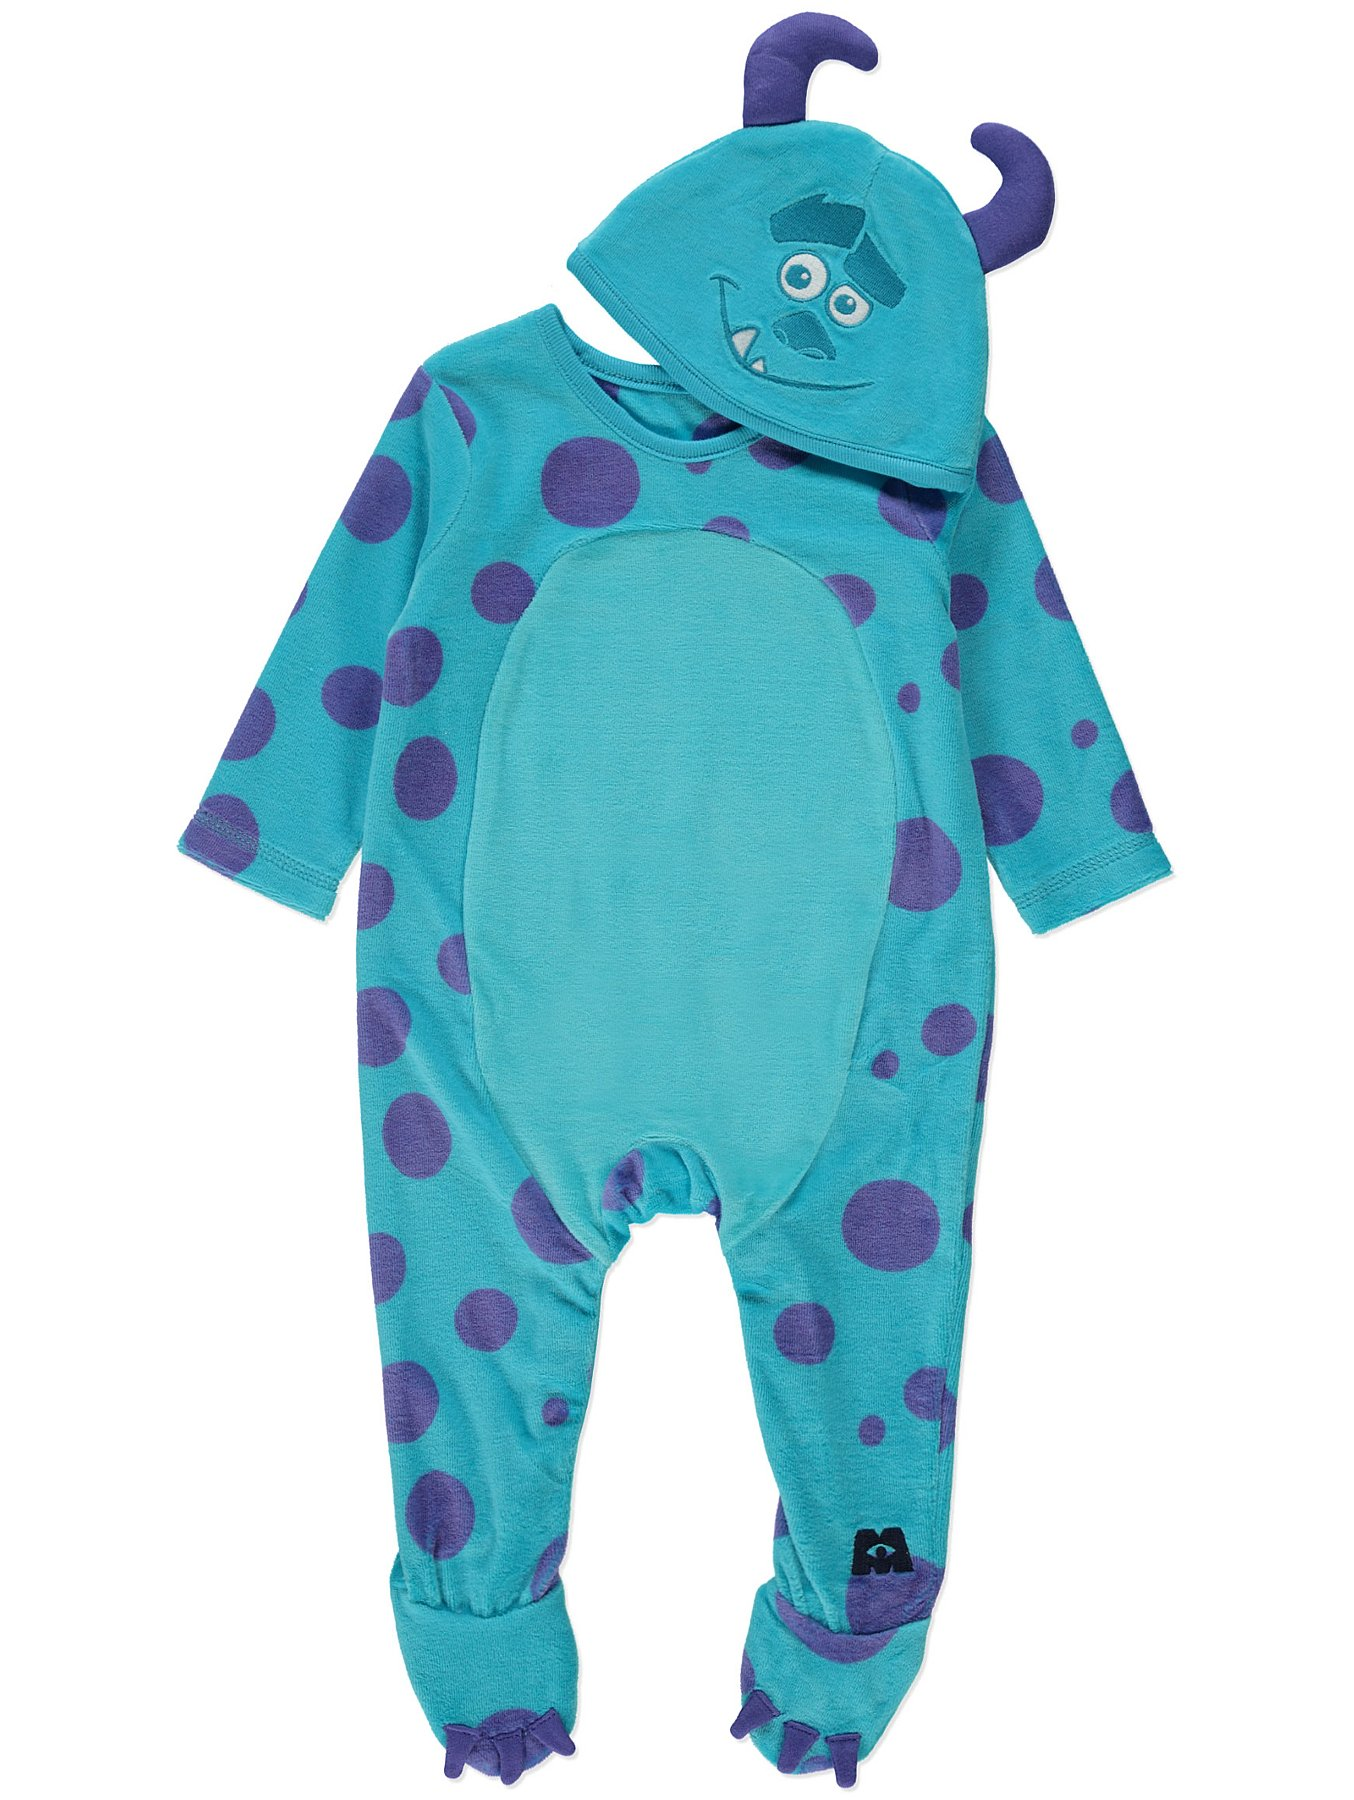 8d122d8d2 Disney Monsters Inc Sully All in One | Baby | George